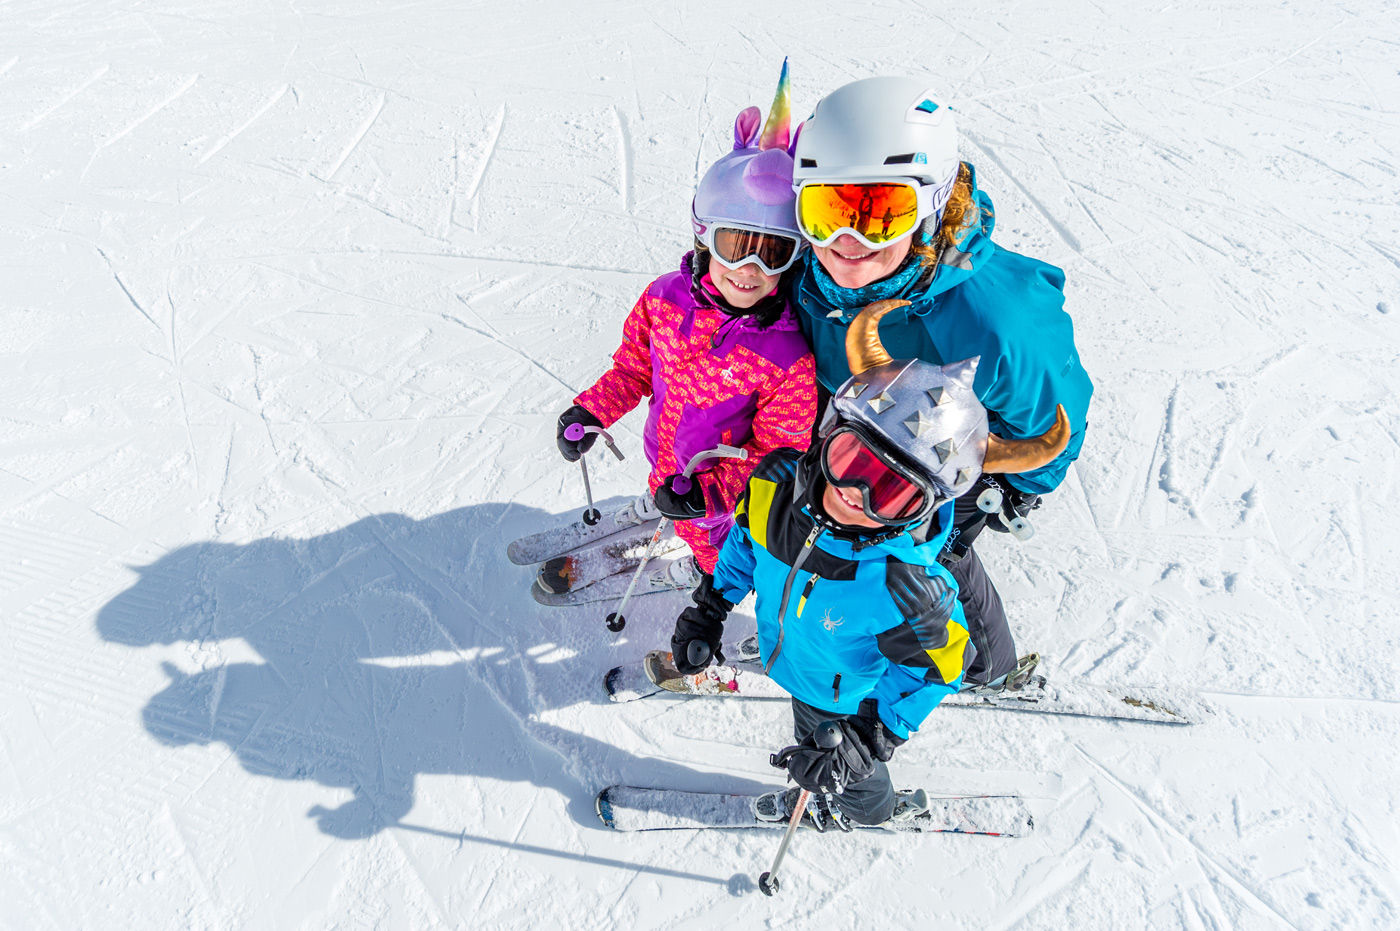 Enjoy one of the many winter activities at Big White Ski Resort when you Stay Ski and Play from the Comfort Suites hotel in Kelowna.